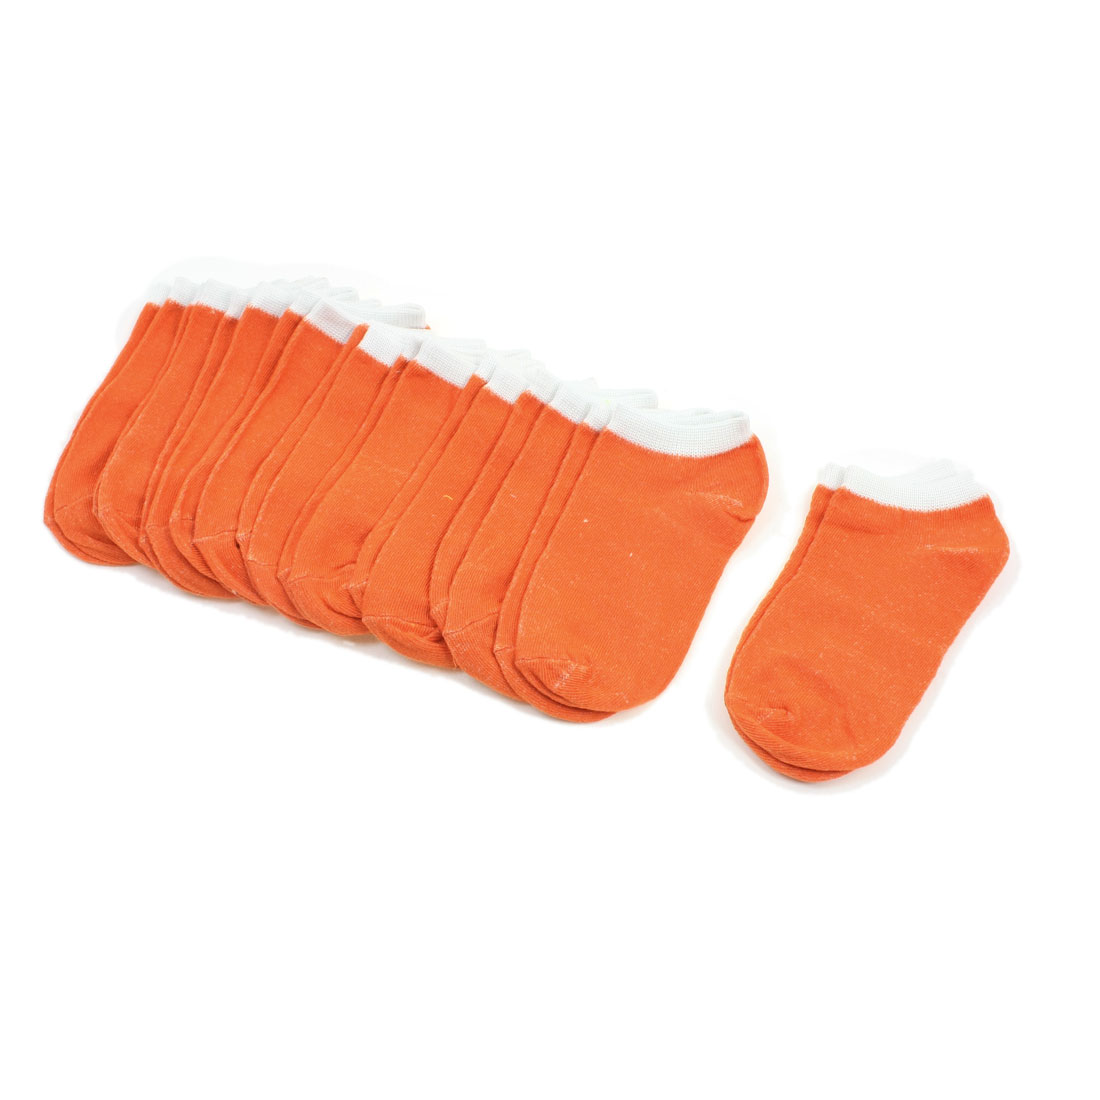 10 Pair Leisure Sport Girl Stretch Ankle Low Cut Socks Orange White